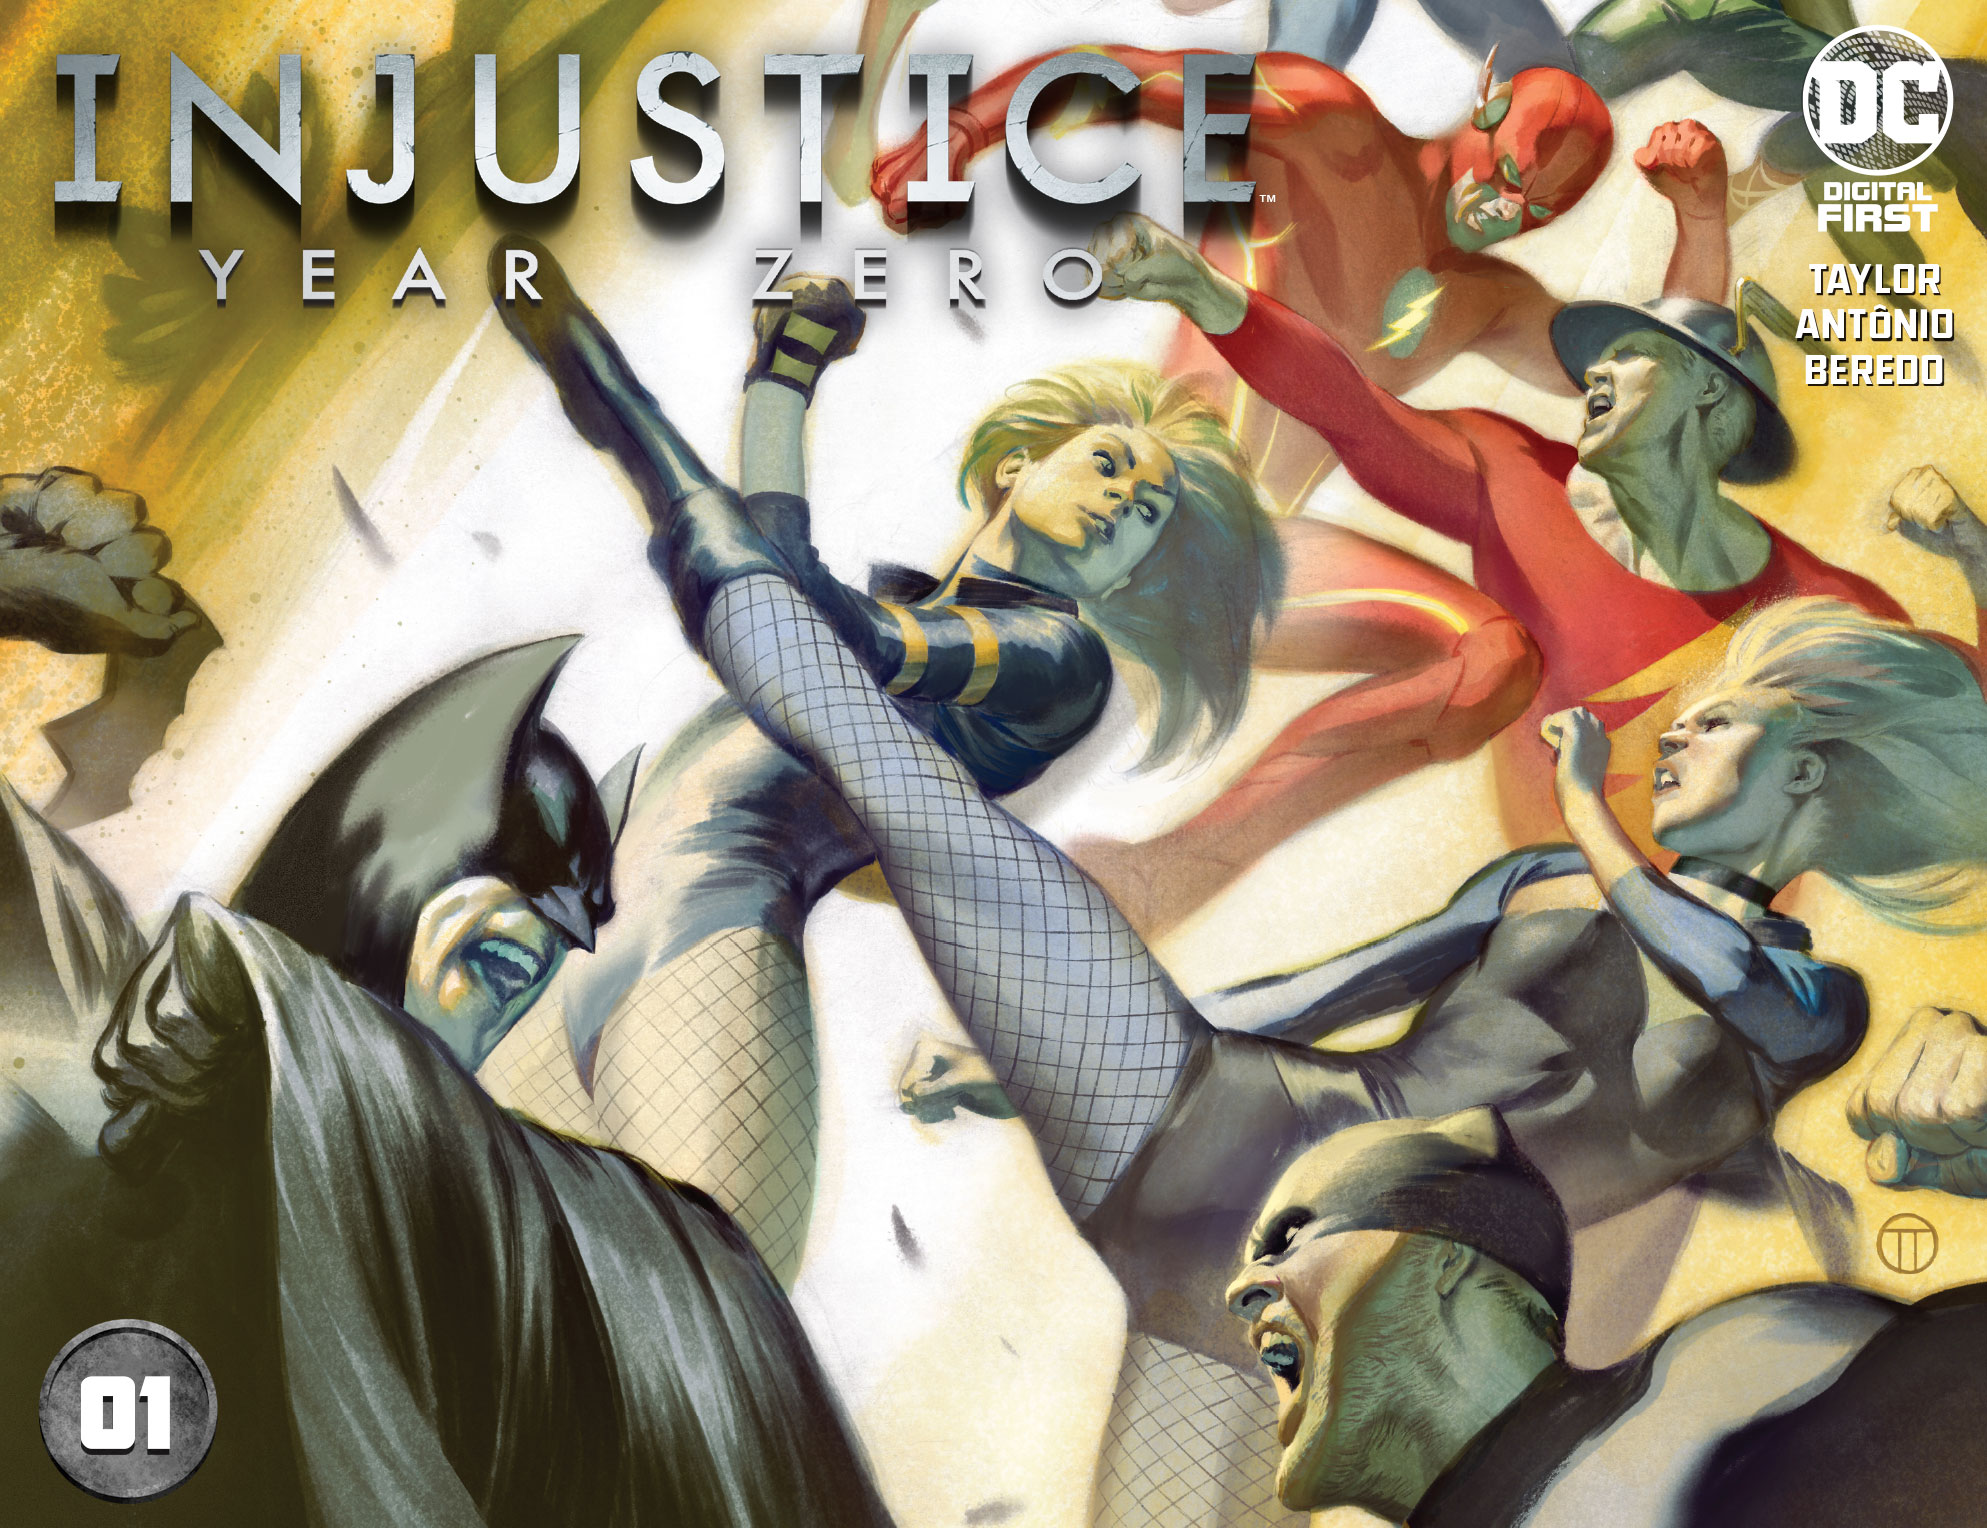 'Injustice: Year Zero' Chapters 1-3 review